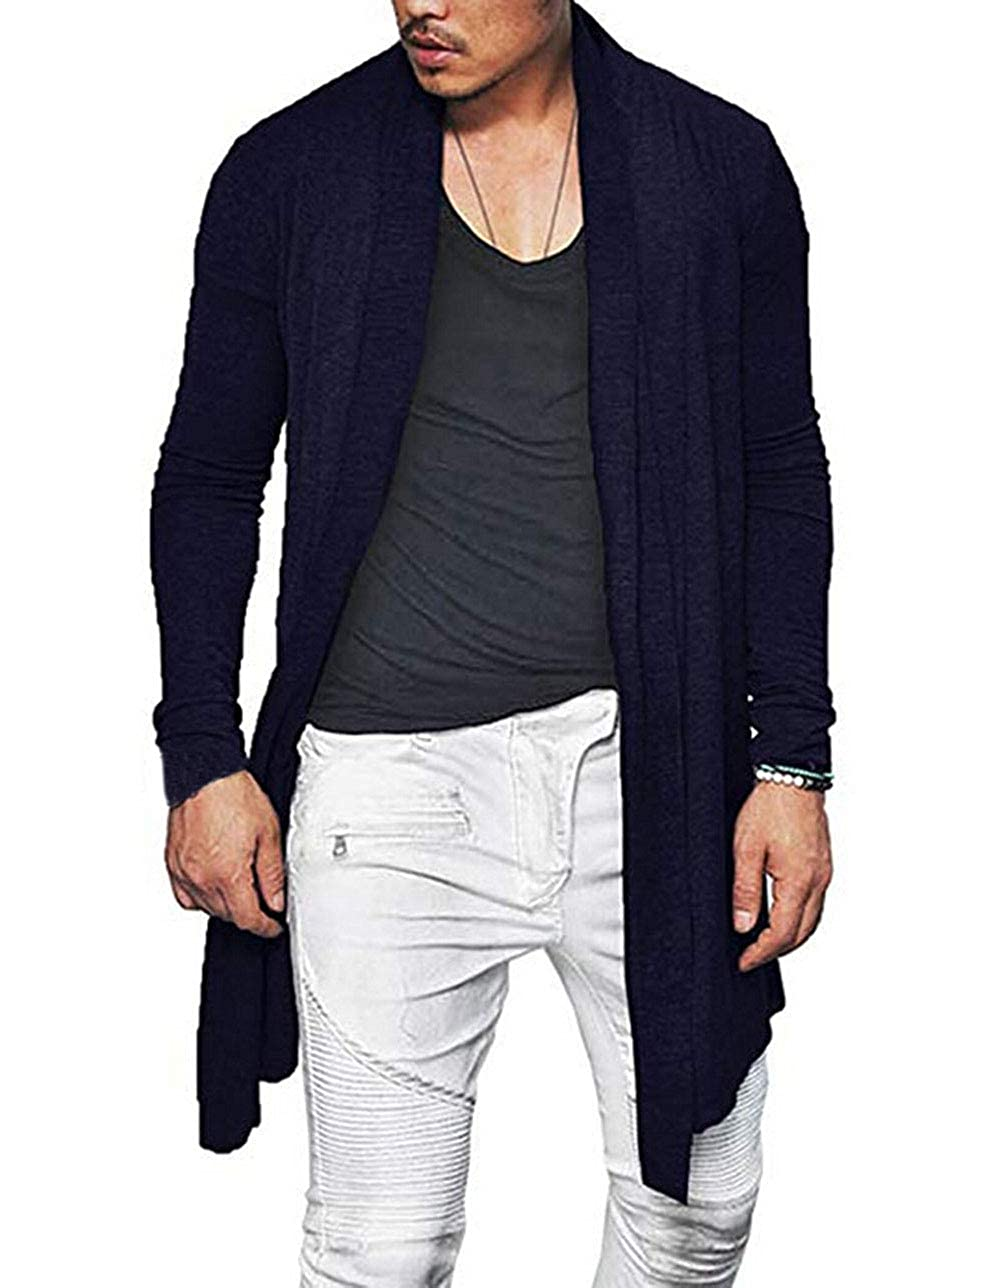 Mens Fashion Designer Knitwear Drape Top Mens Long Sleeve Cardigans Round Collar Shawl Men Outerwear